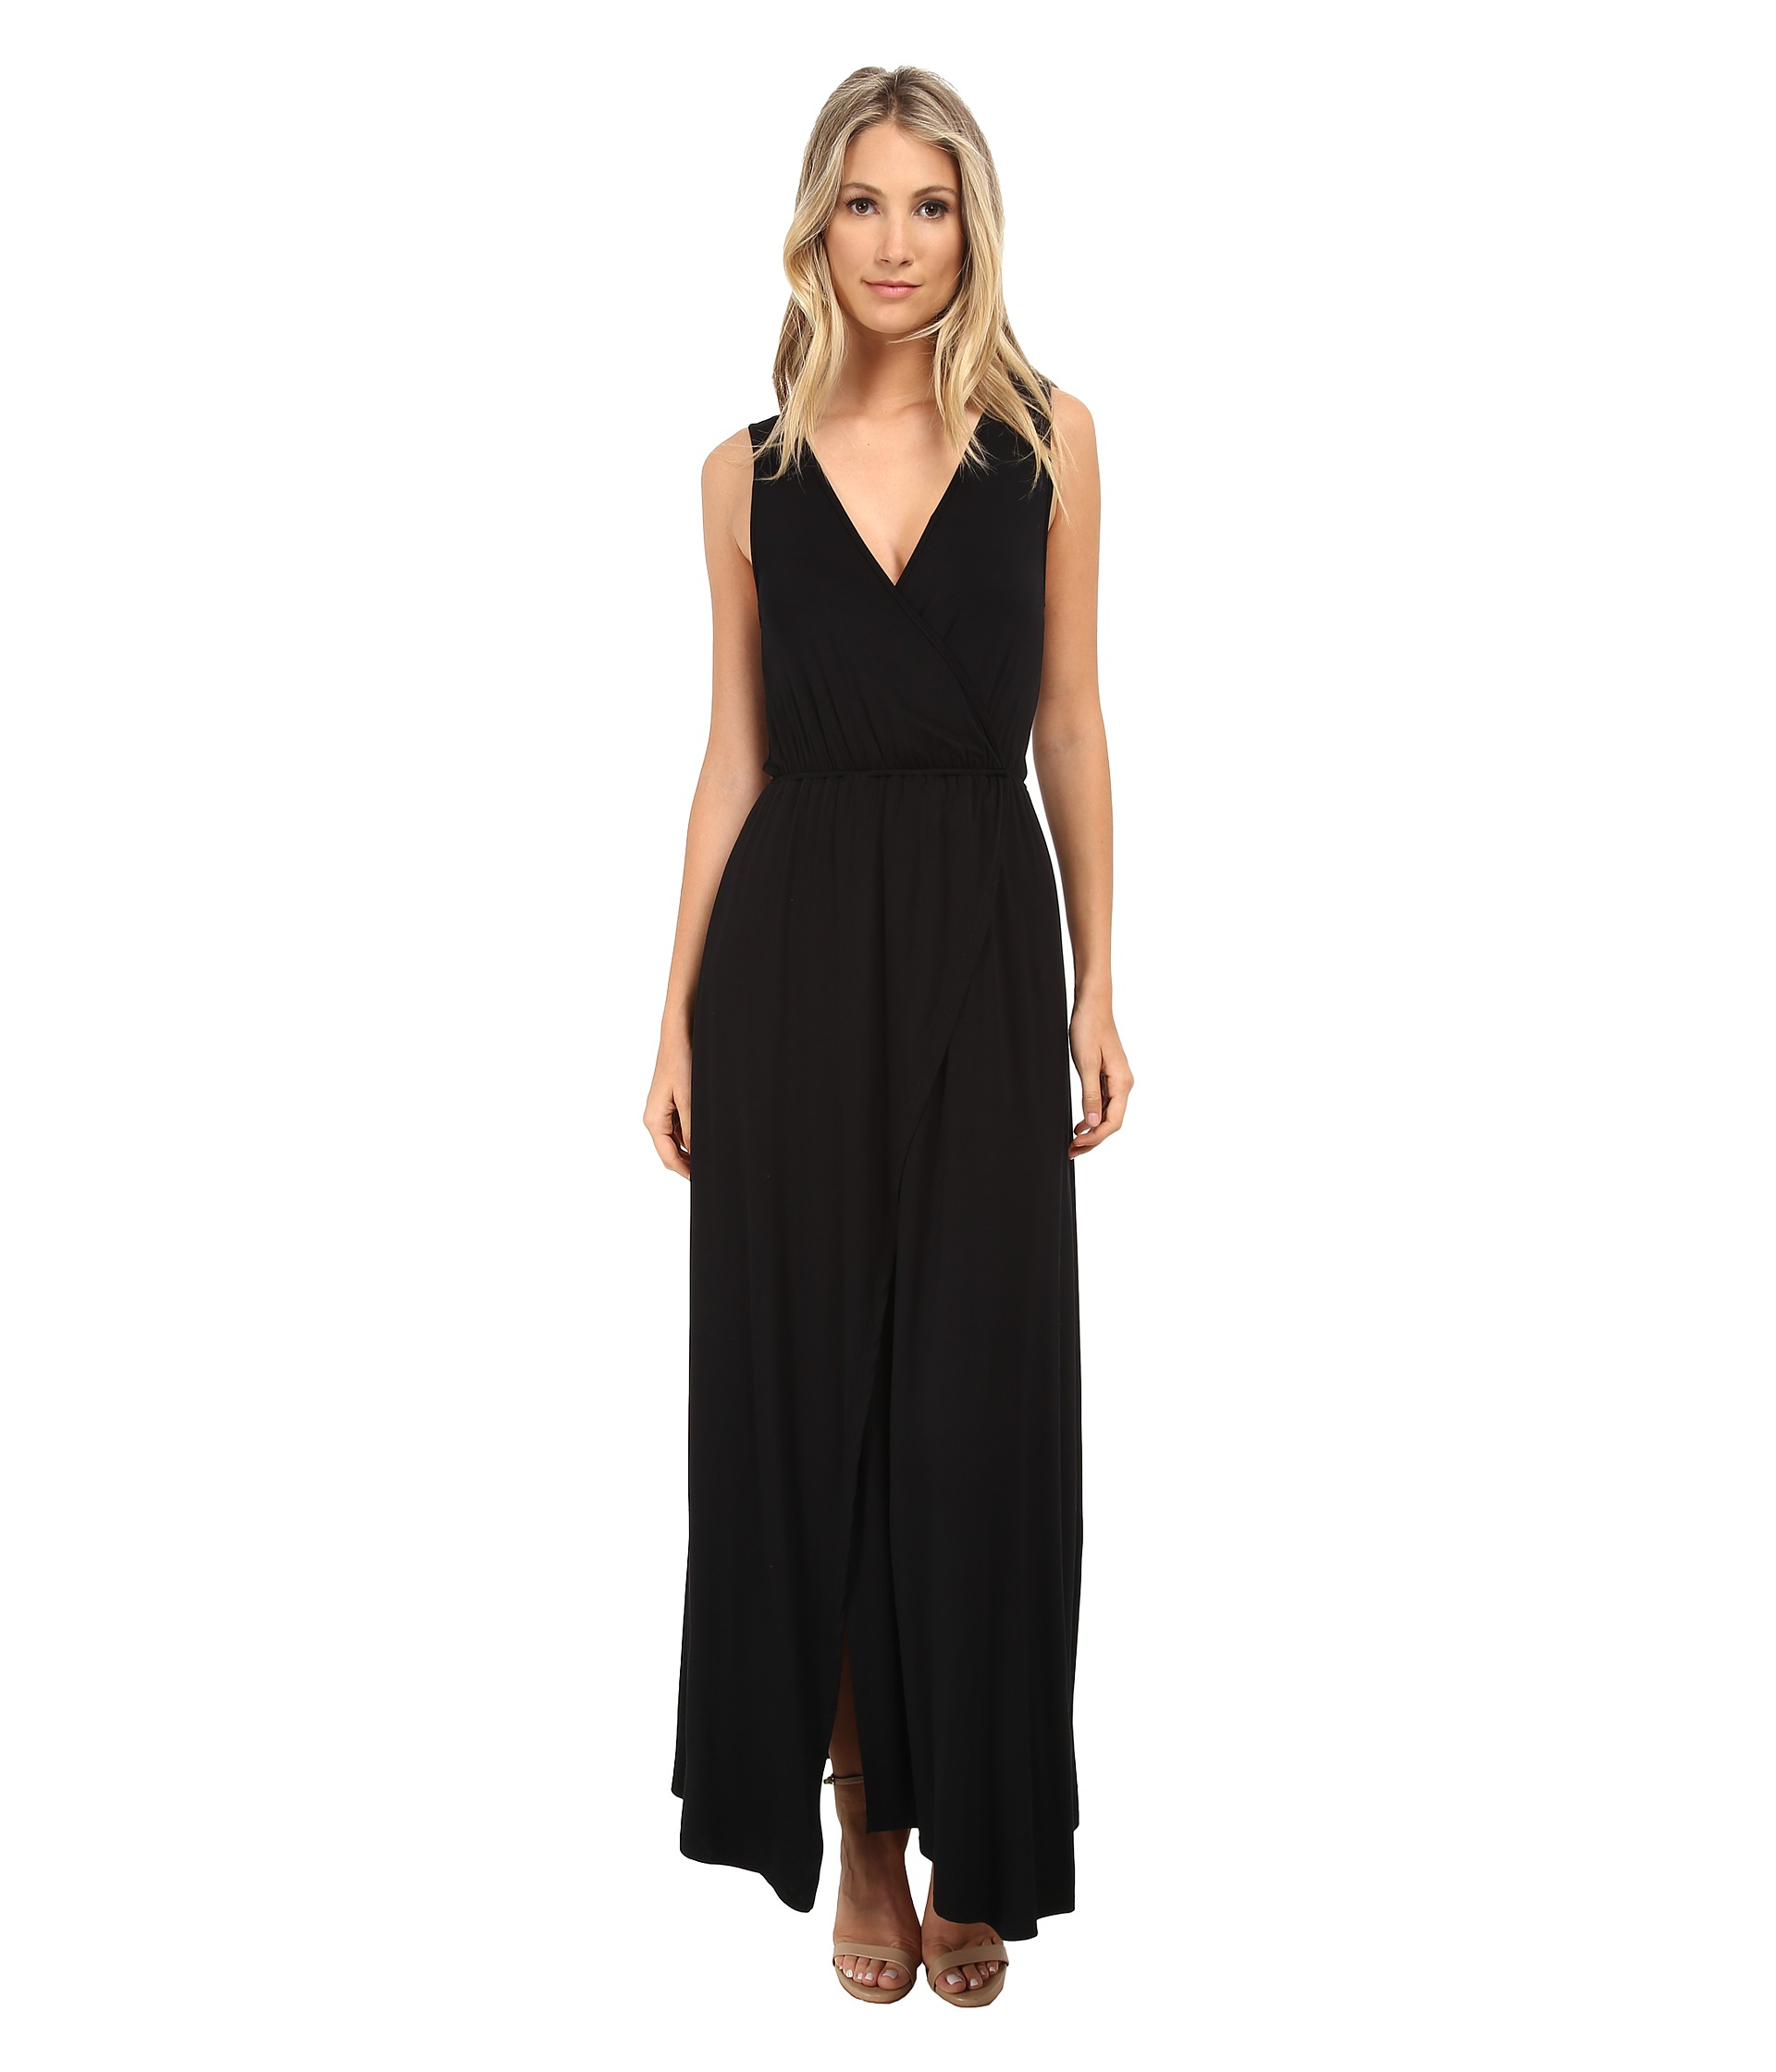 Maxi Dress - Shipped Free at Zappos